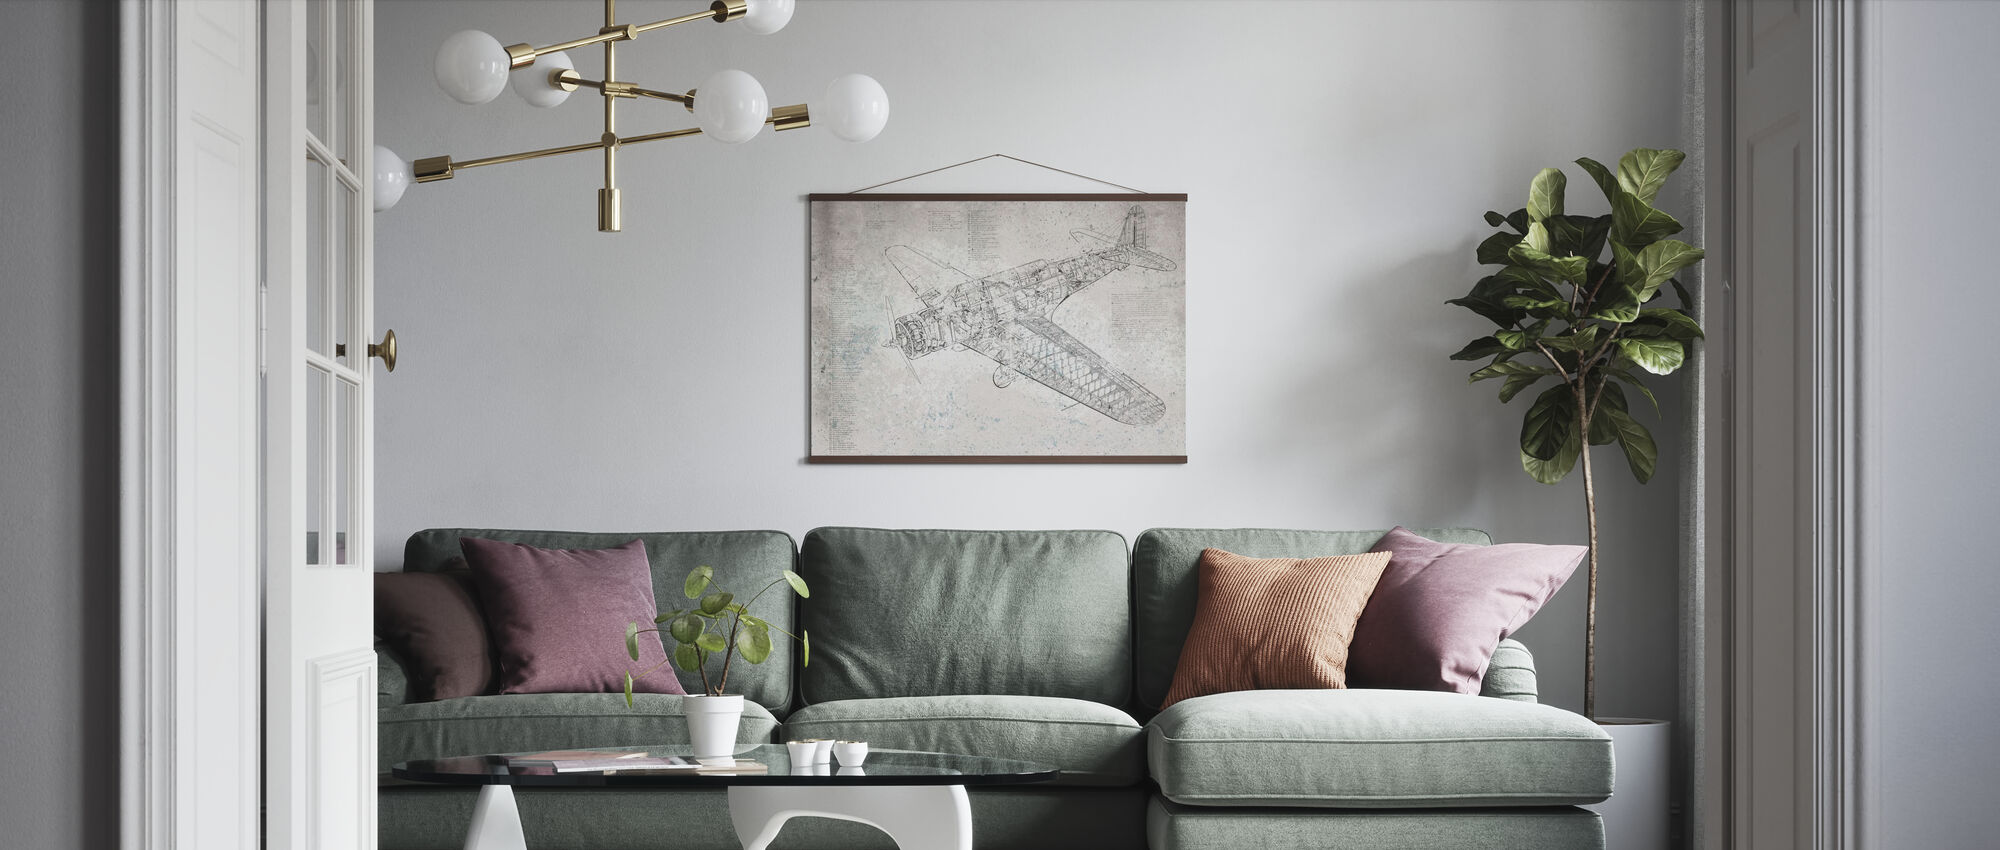 Retro Airplane - Poster - Living Room